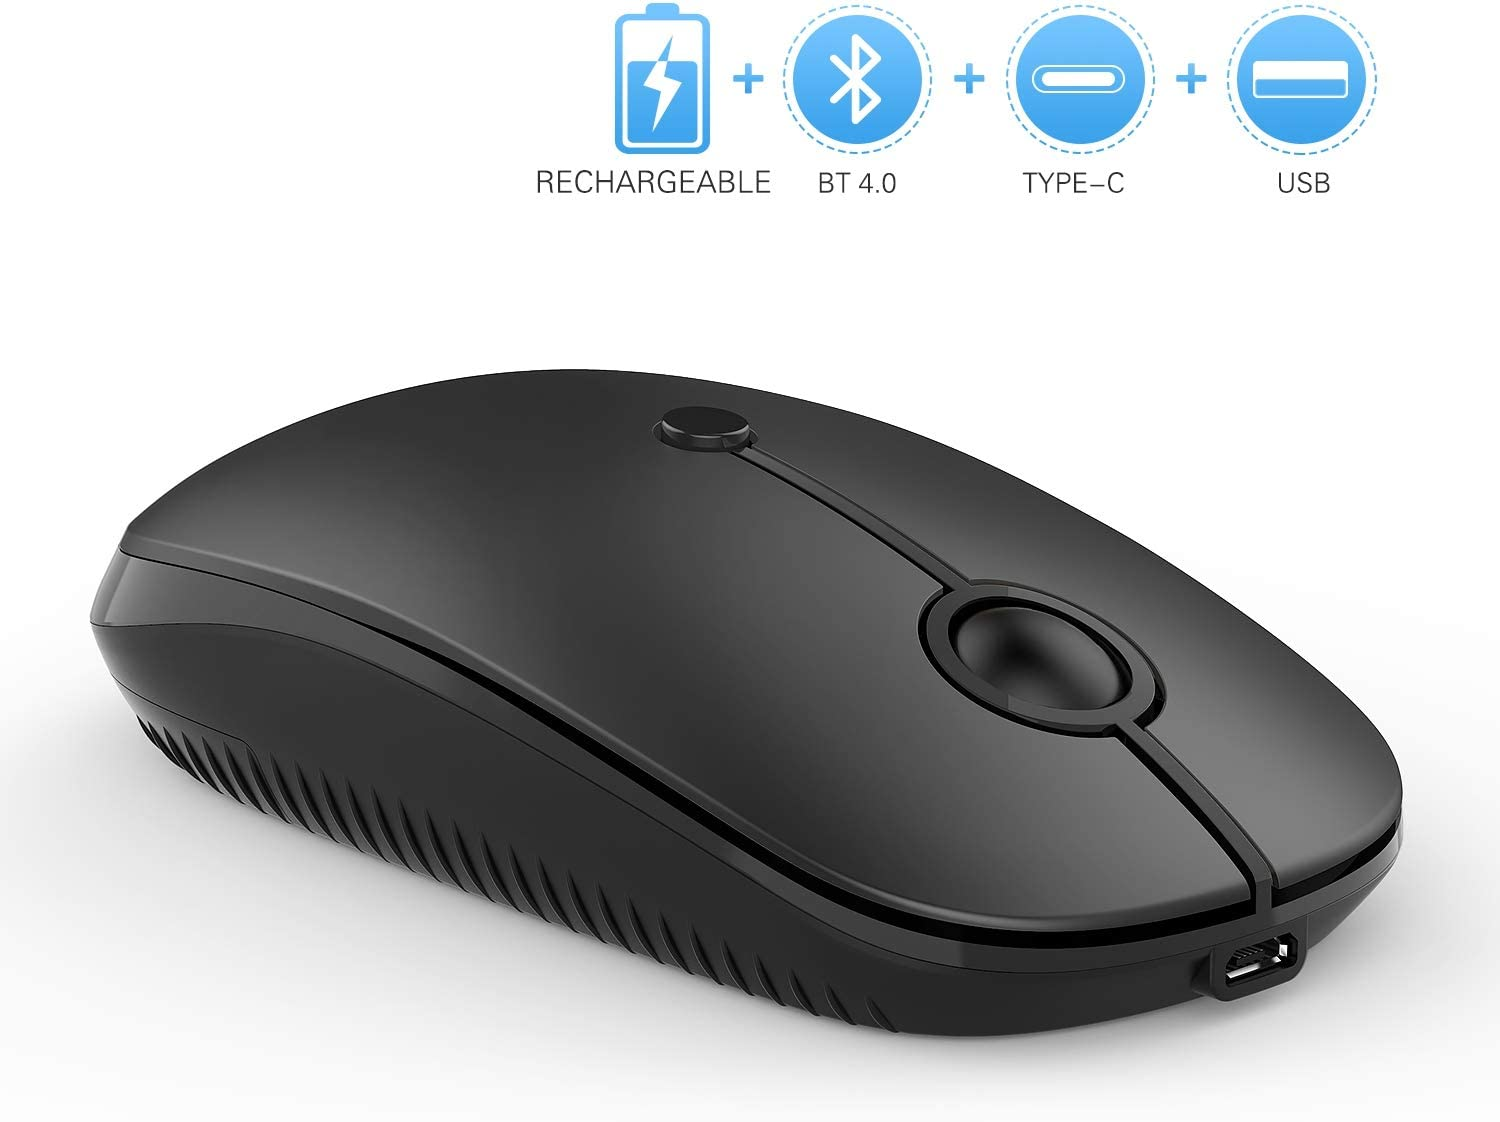 Vssoplor Rechargeable Wireless Bluetooth Mouse Compatible with MacBook, Laptop, Windows Android Mac OS Quiet Clicking Mouse with Bluetooth, Type C and Nano USB Receiver-Black